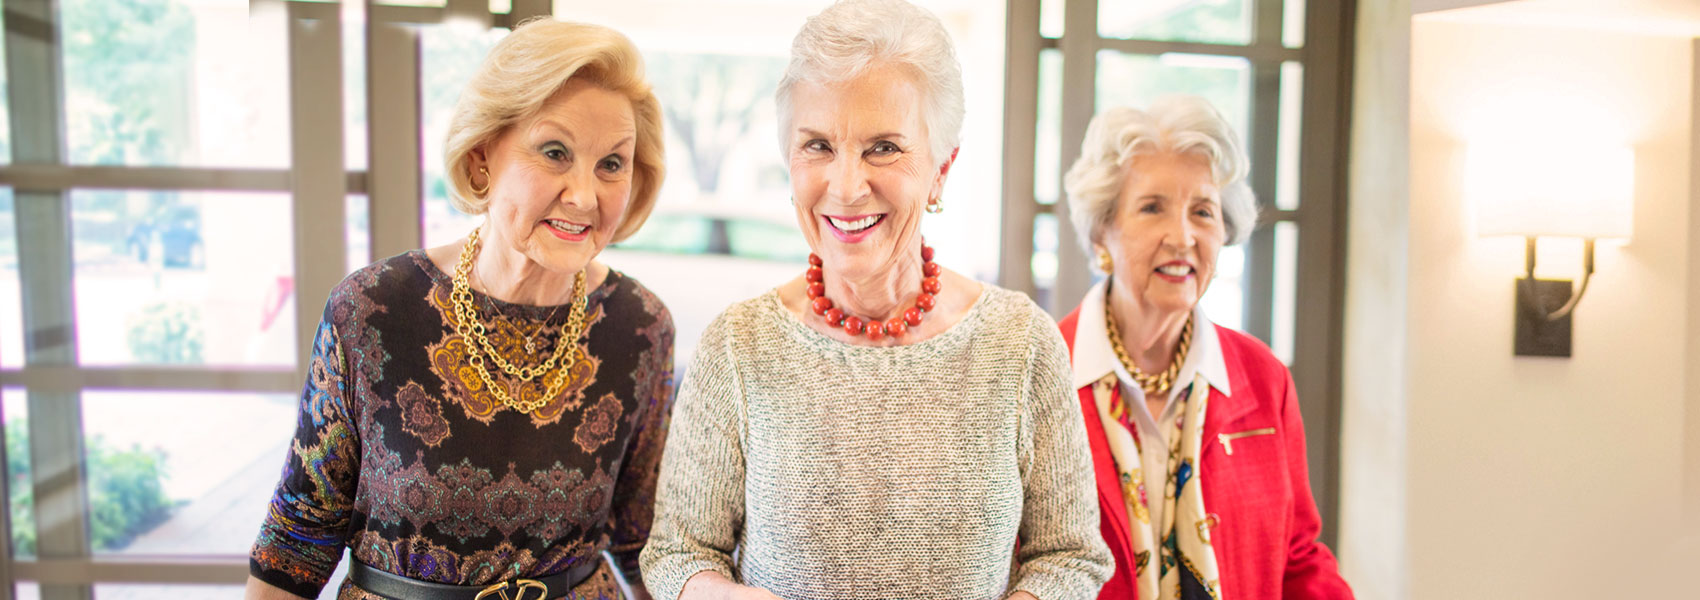 Three Senior Women Posing for Camera